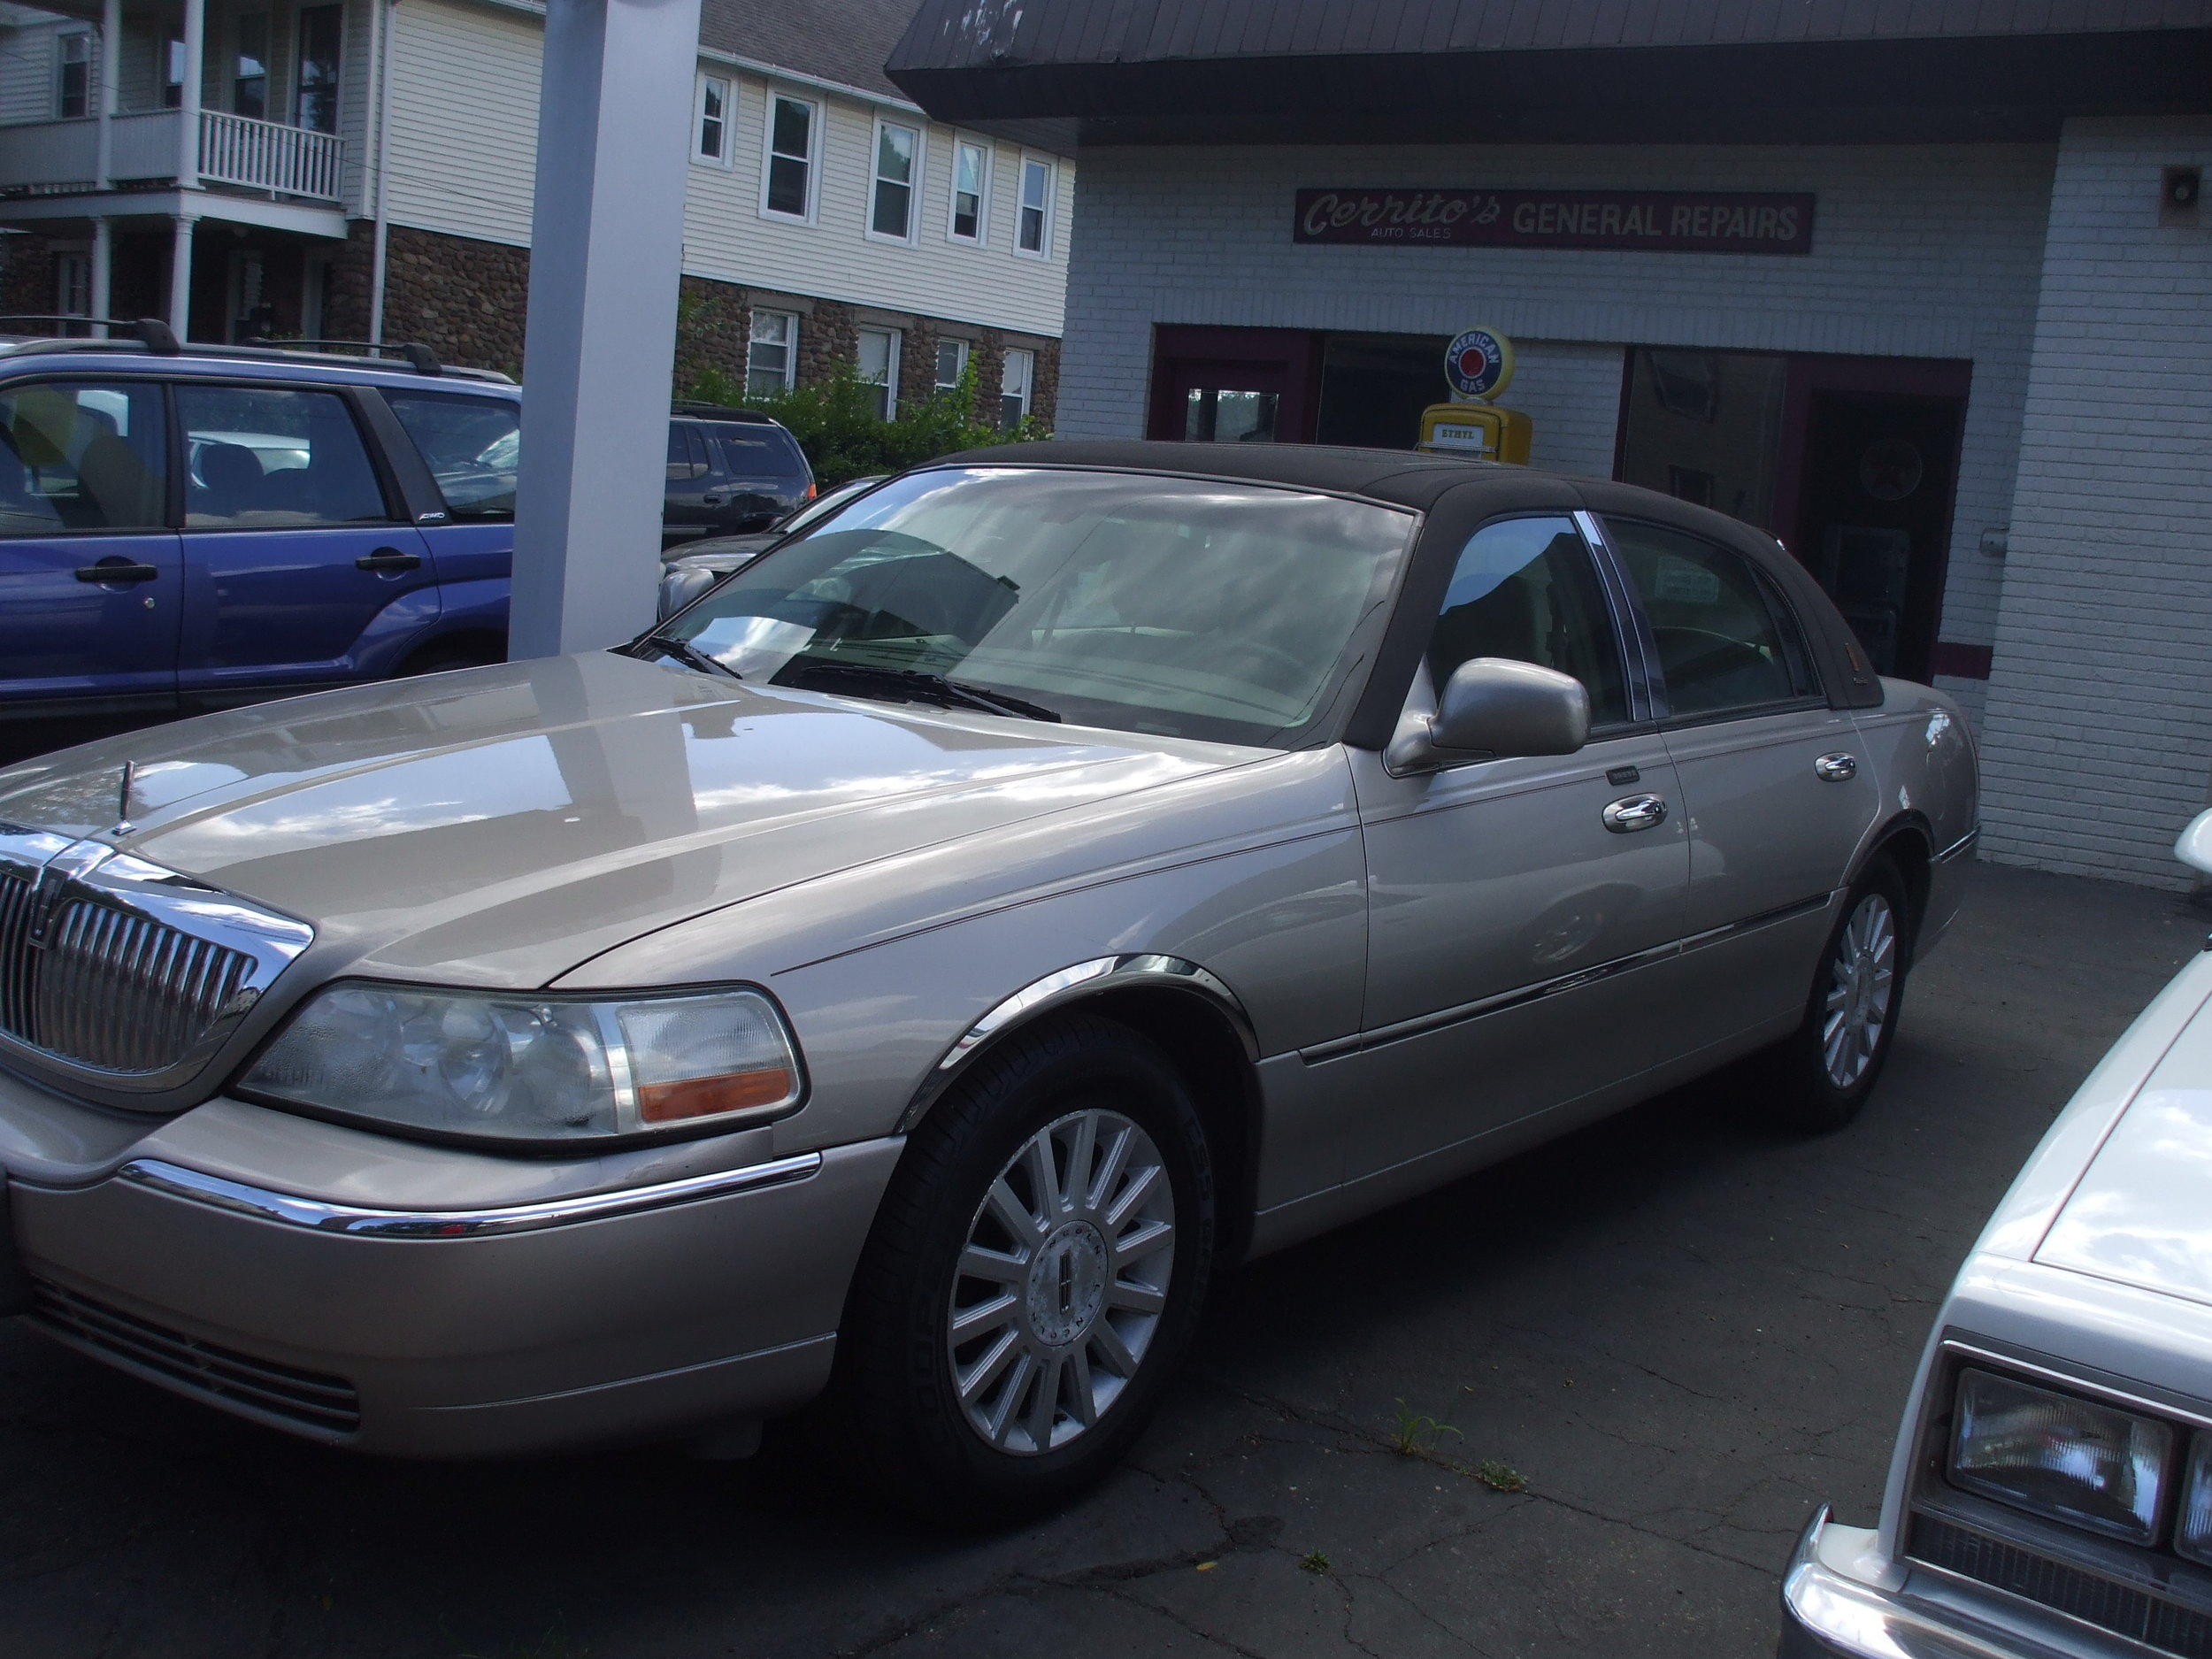 2003 Lincoln Towncar $5,800  85k executive edition leather loaded great condition. Call or stop by Cerritos Auto Sales280N colony st Wallingford Ct 06492. 203-265-6142